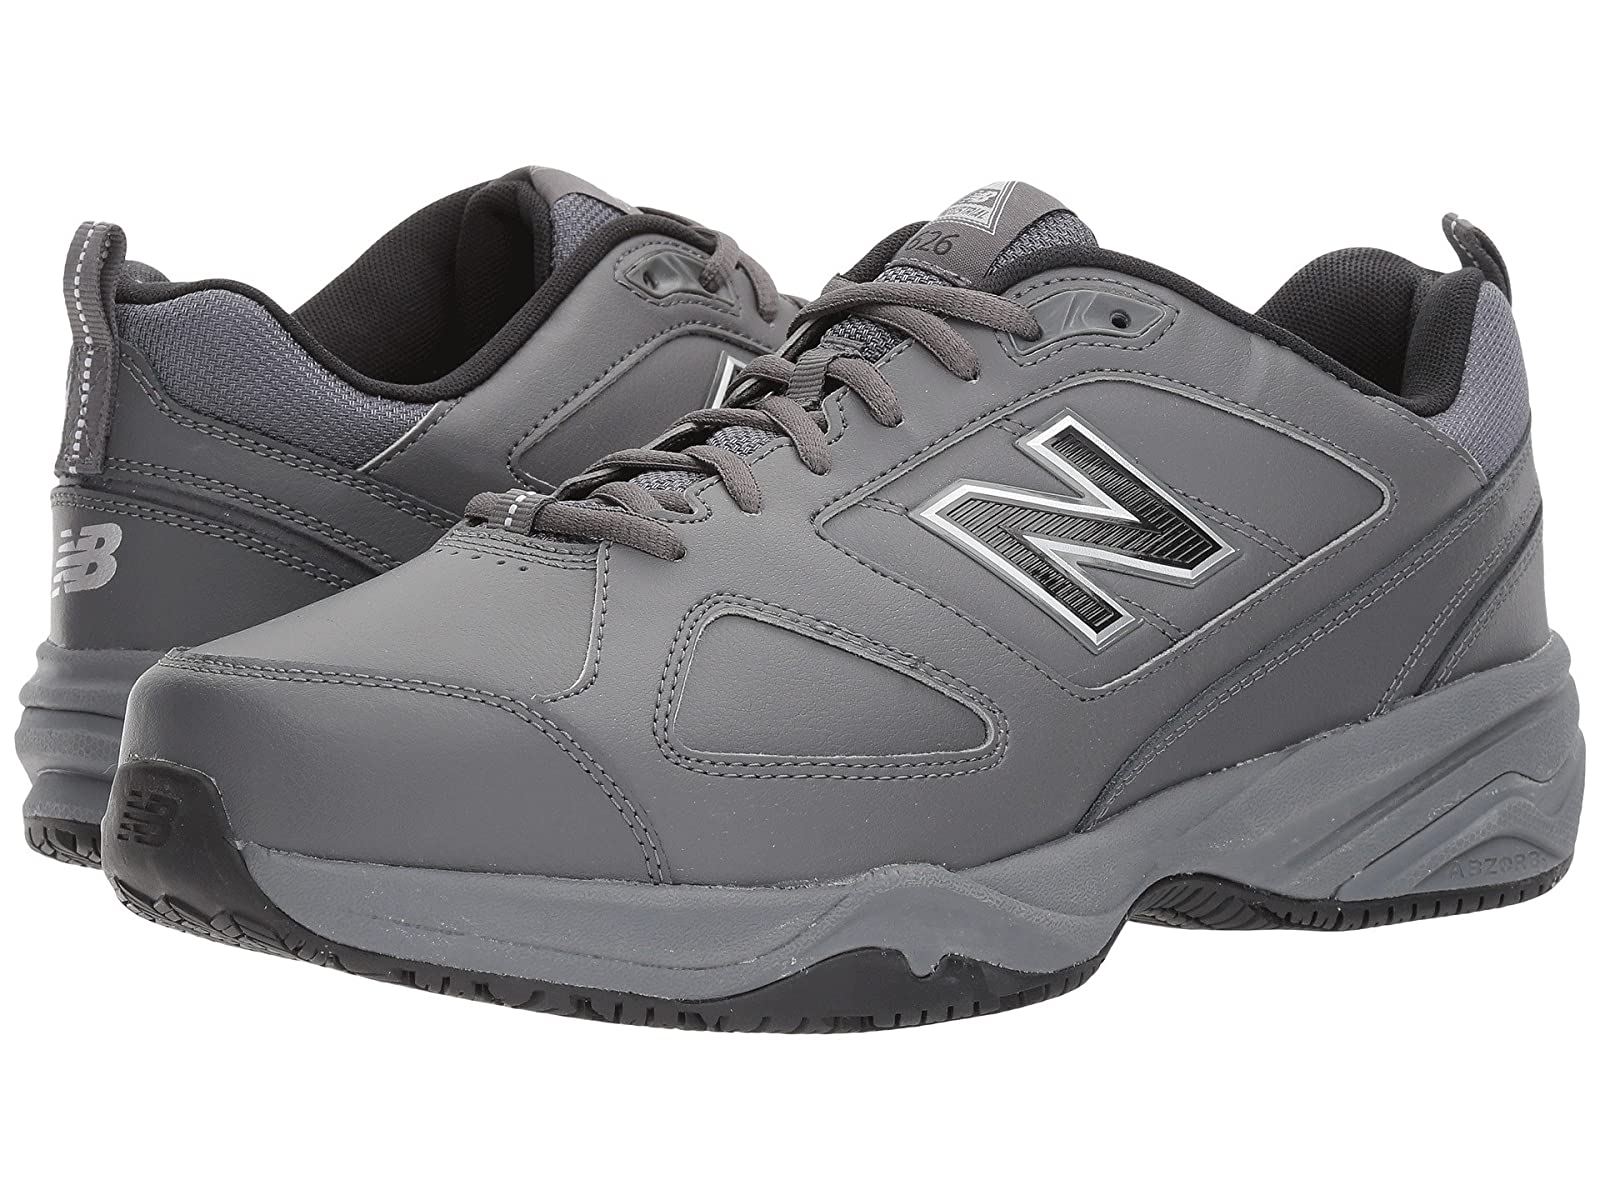 New Balance MID626v2Atmospheric grades have affordable shoes